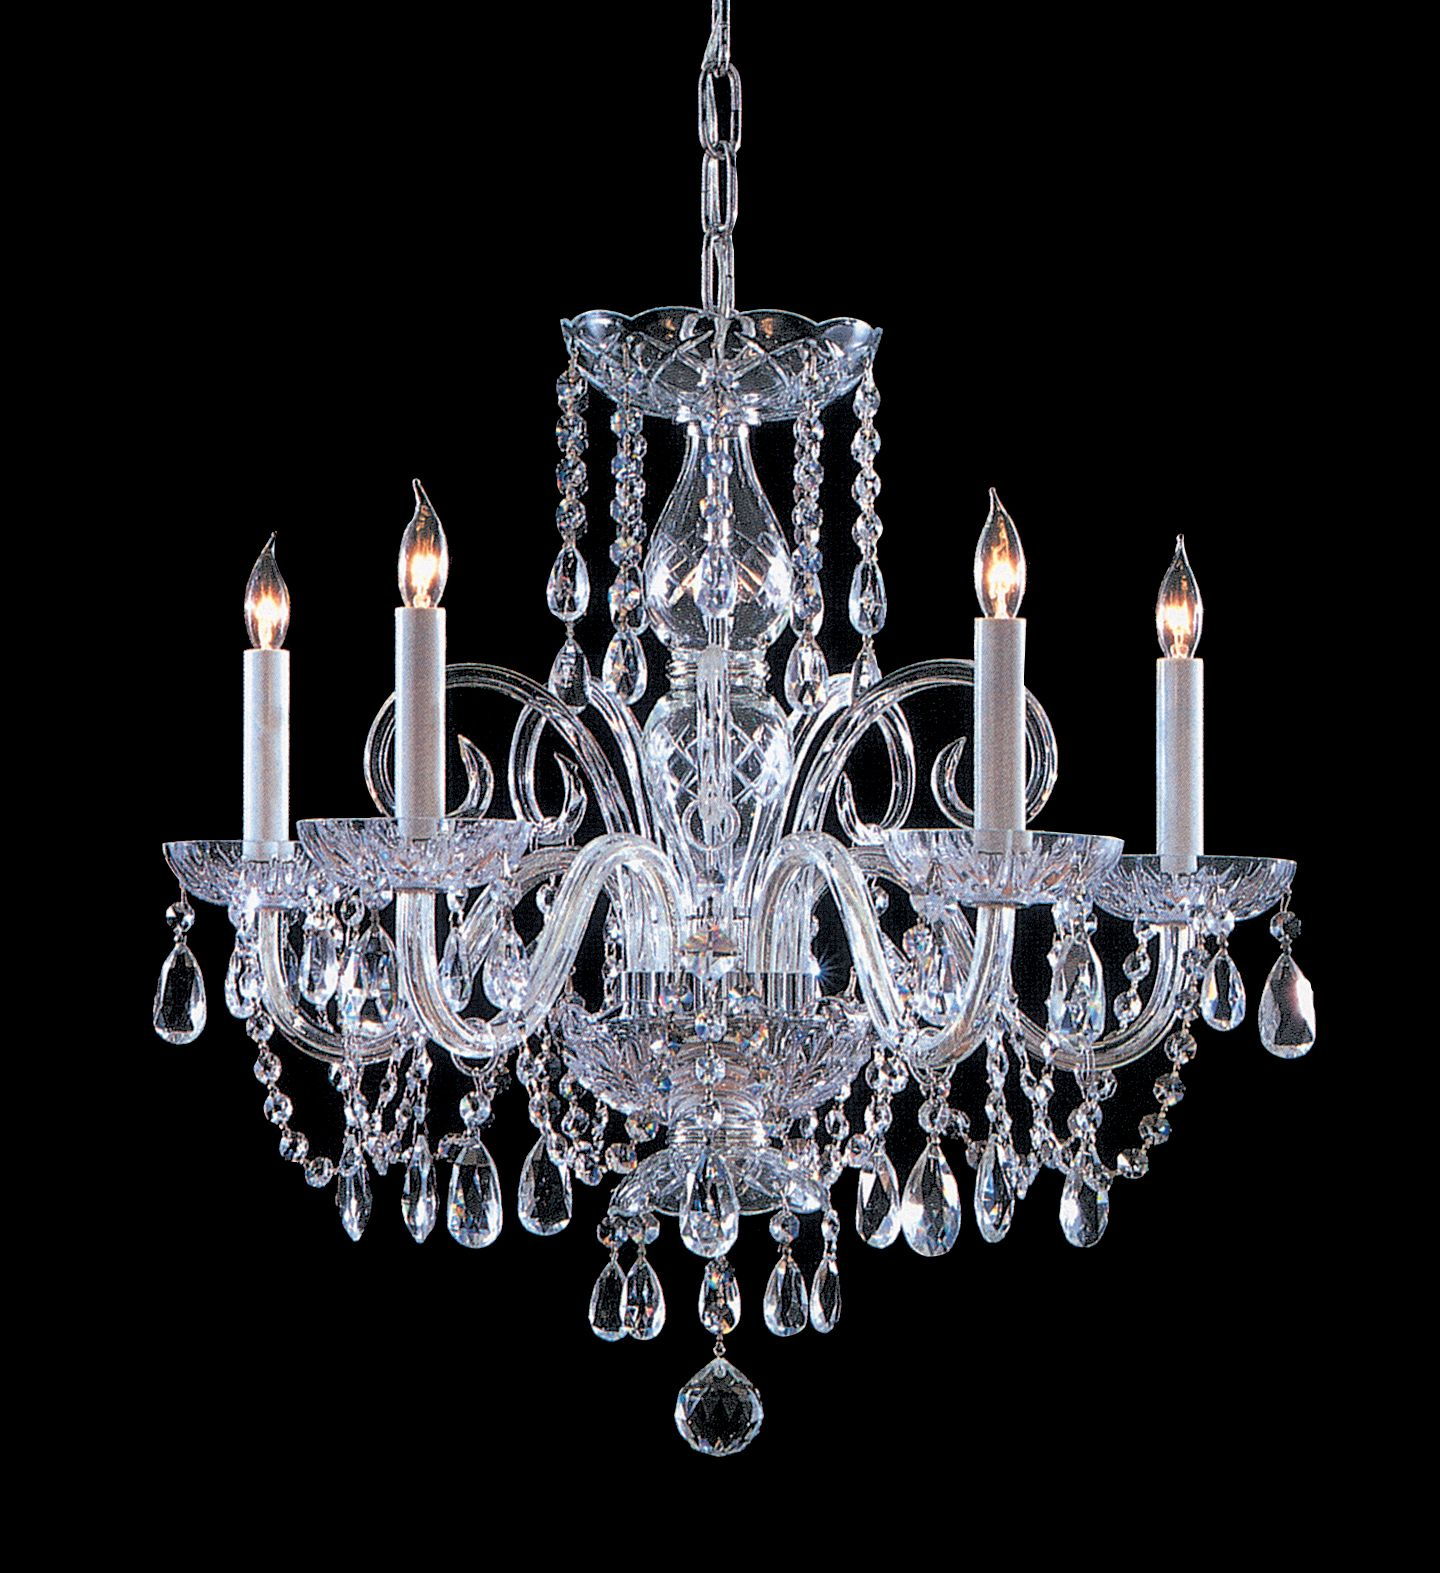 20 contemporary crystal chandelier for ceiling light genmice the fake candles chandelier arubaitofo Images